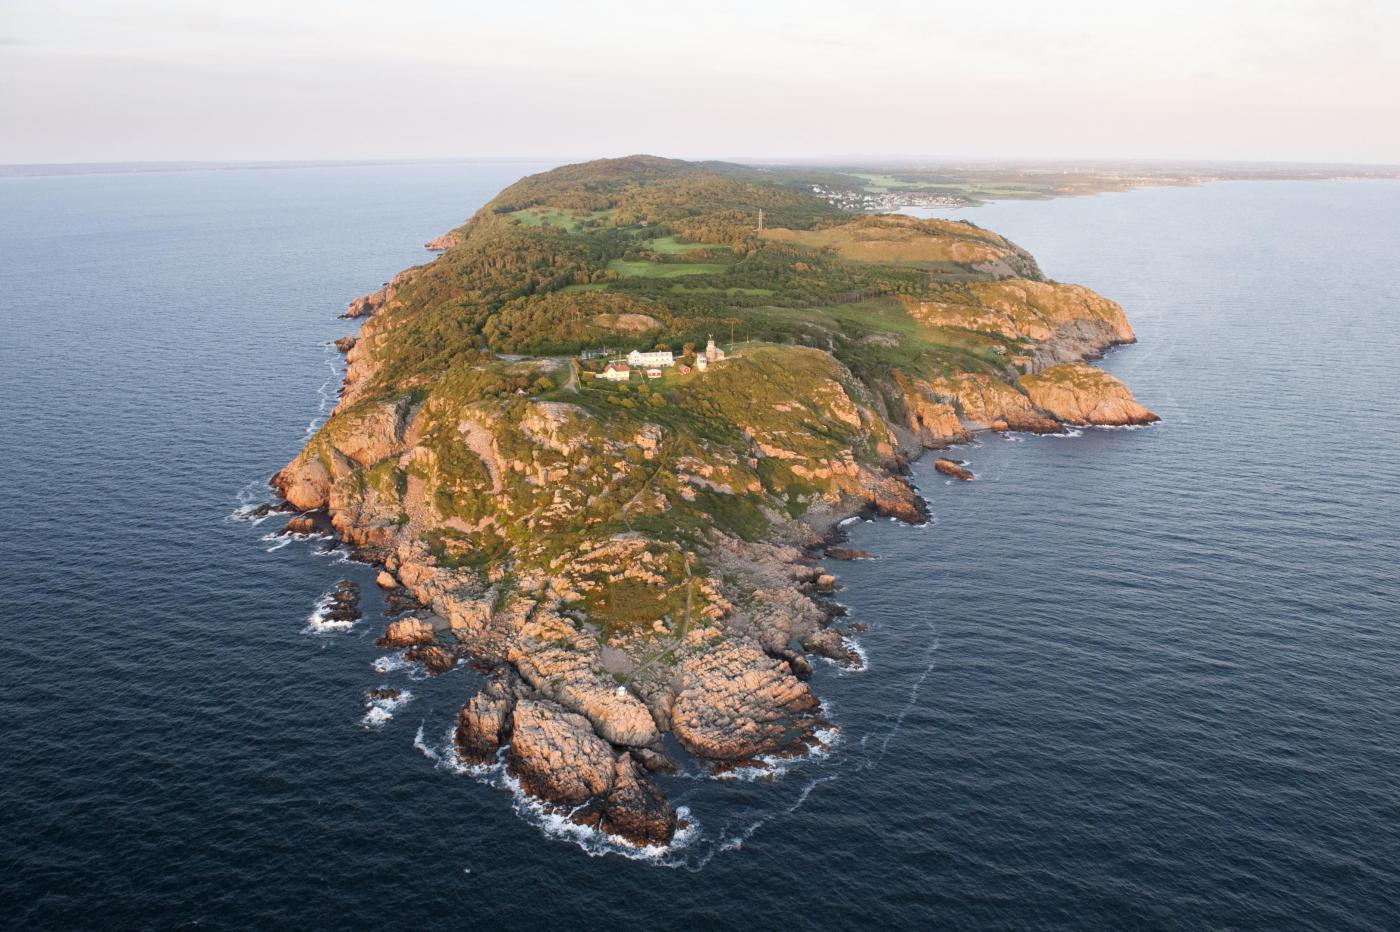 The Kullaberg peninsula